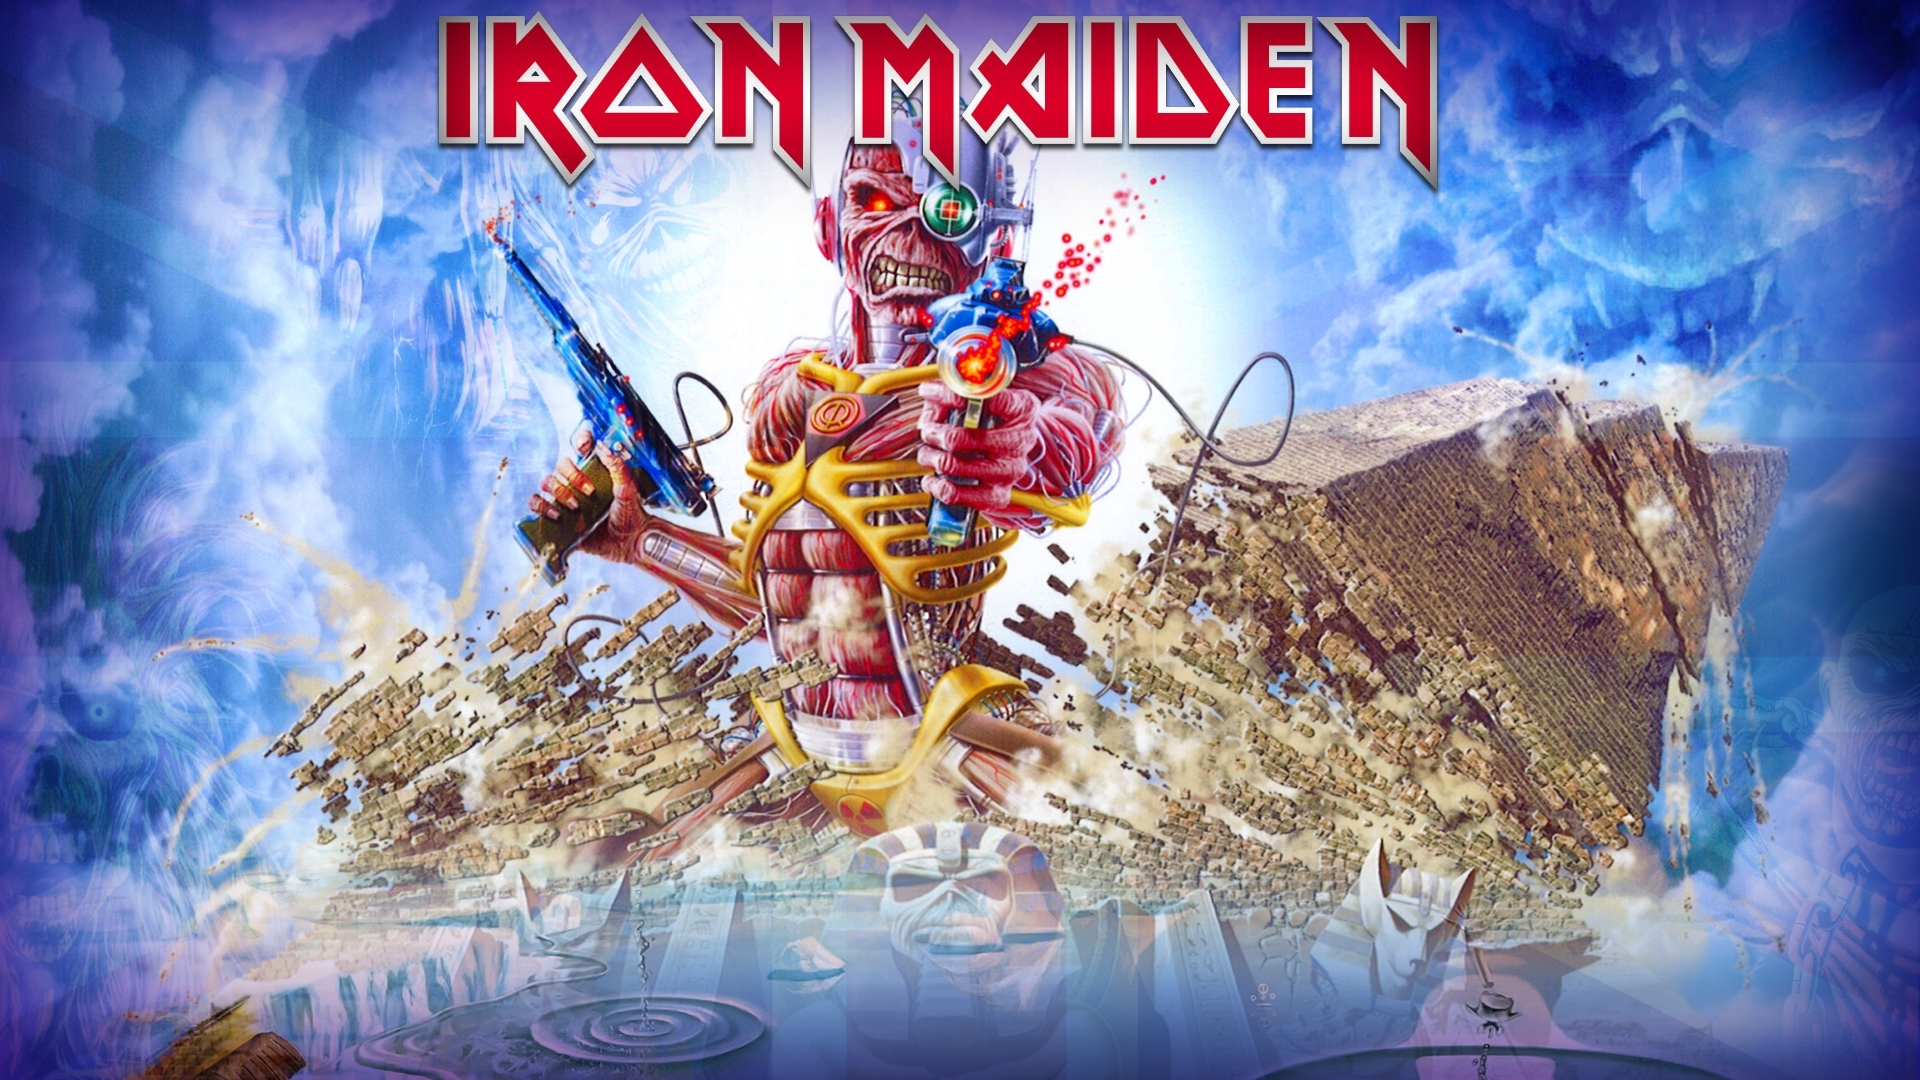 iron maiden pictures full hd wallpaper for iphone computer screen